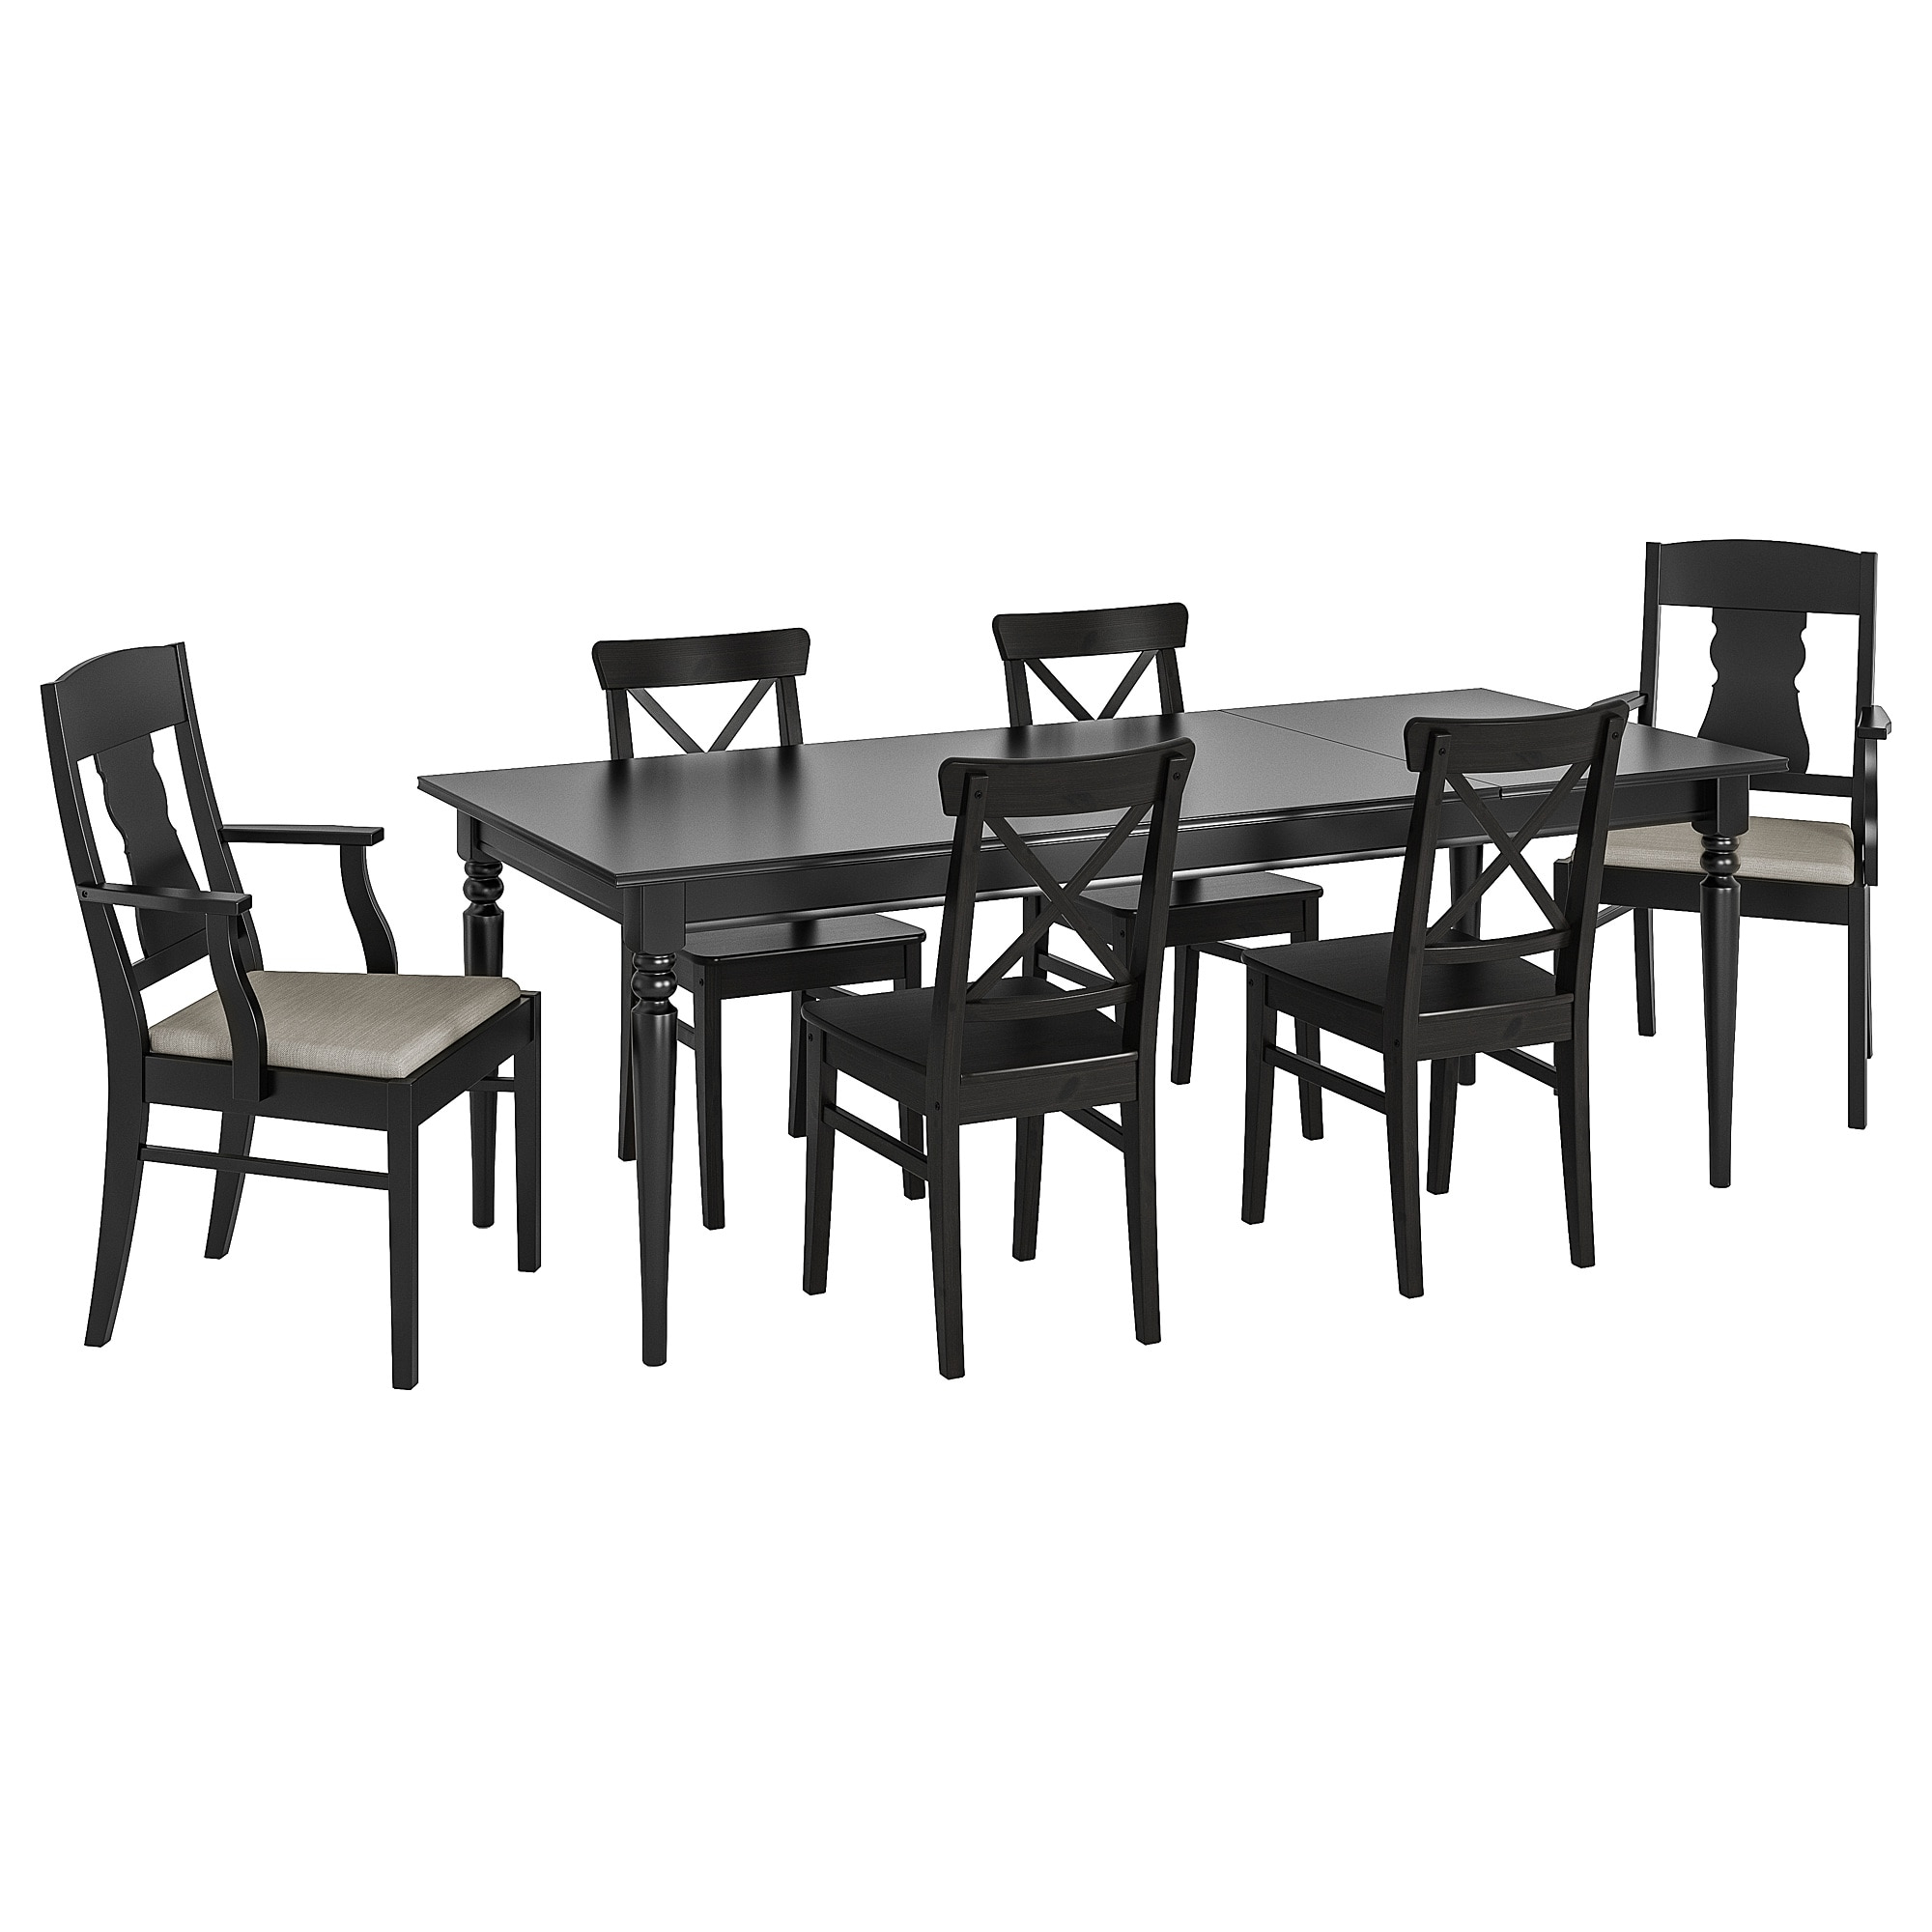 Most Current Castellanos Modern 5 Piece Counter Height Dining Sets With Regard To Ingatorp / Ingolf Table And 6 Chairs – Black, Nolhaga Grey/beige – Ikea (View 15 of 25)